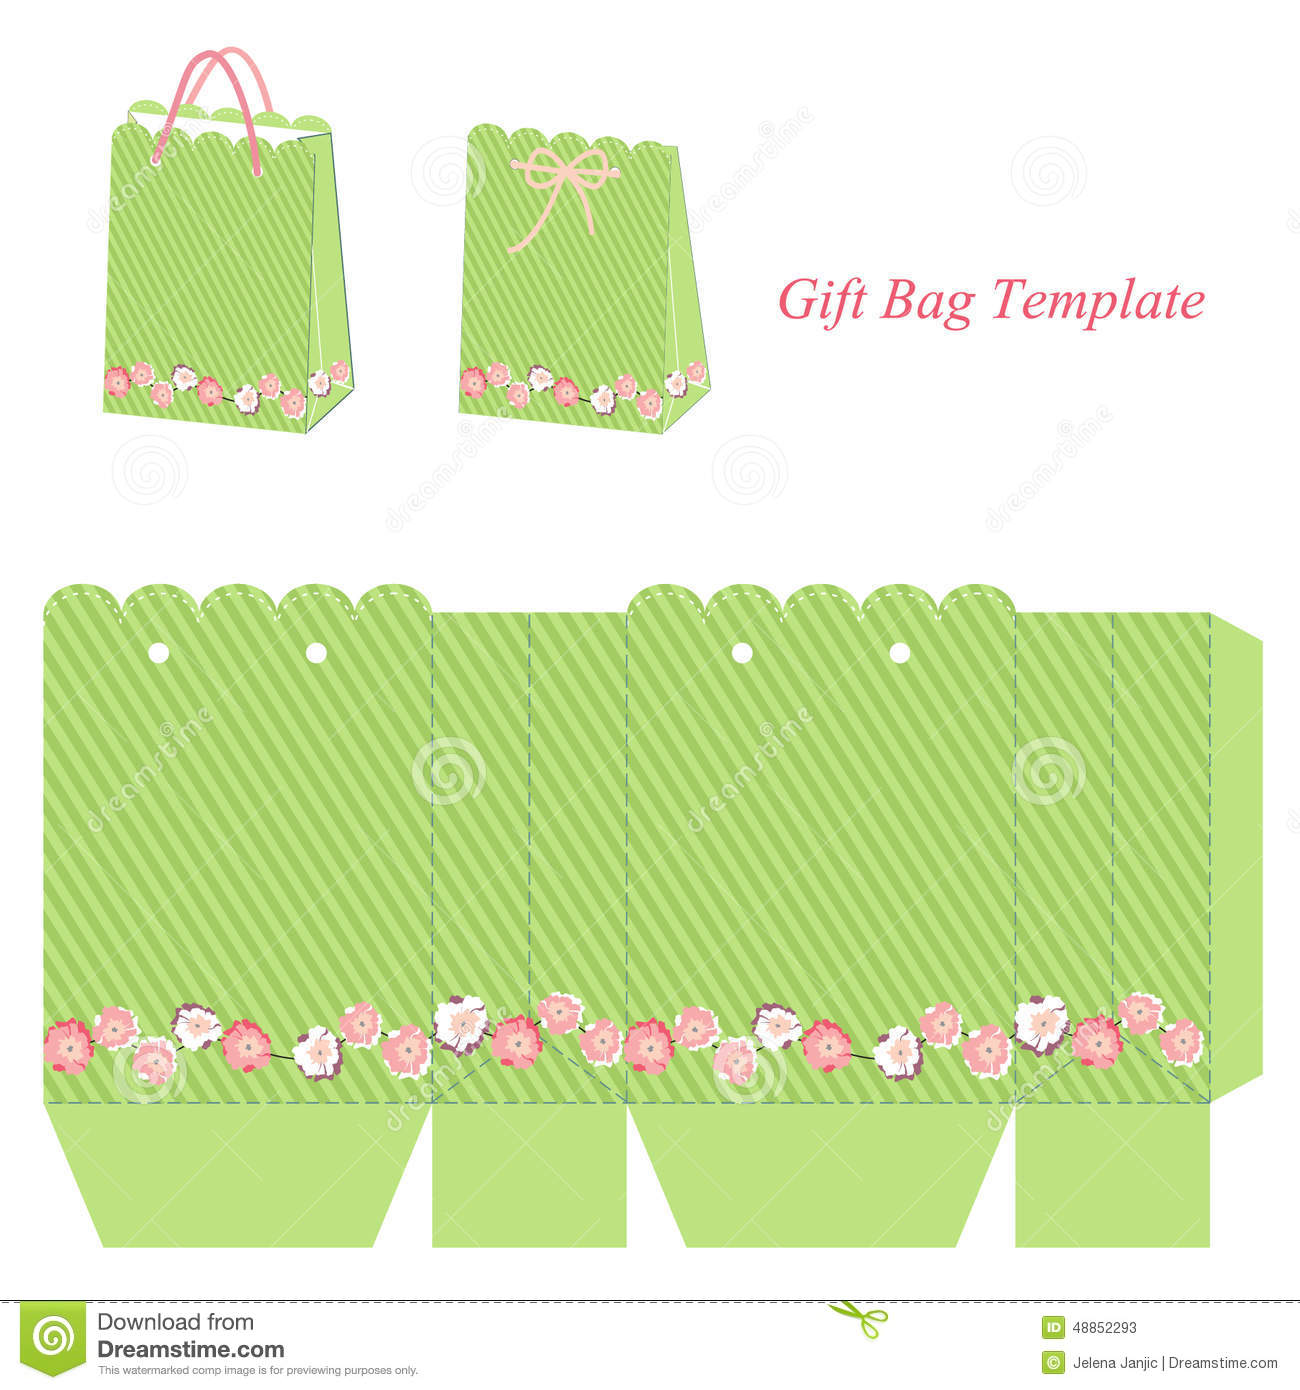 Green gift bag template with stripes and pink flowers stock vector green gift bag template with stripes and flowers vector illustration maxwellsz